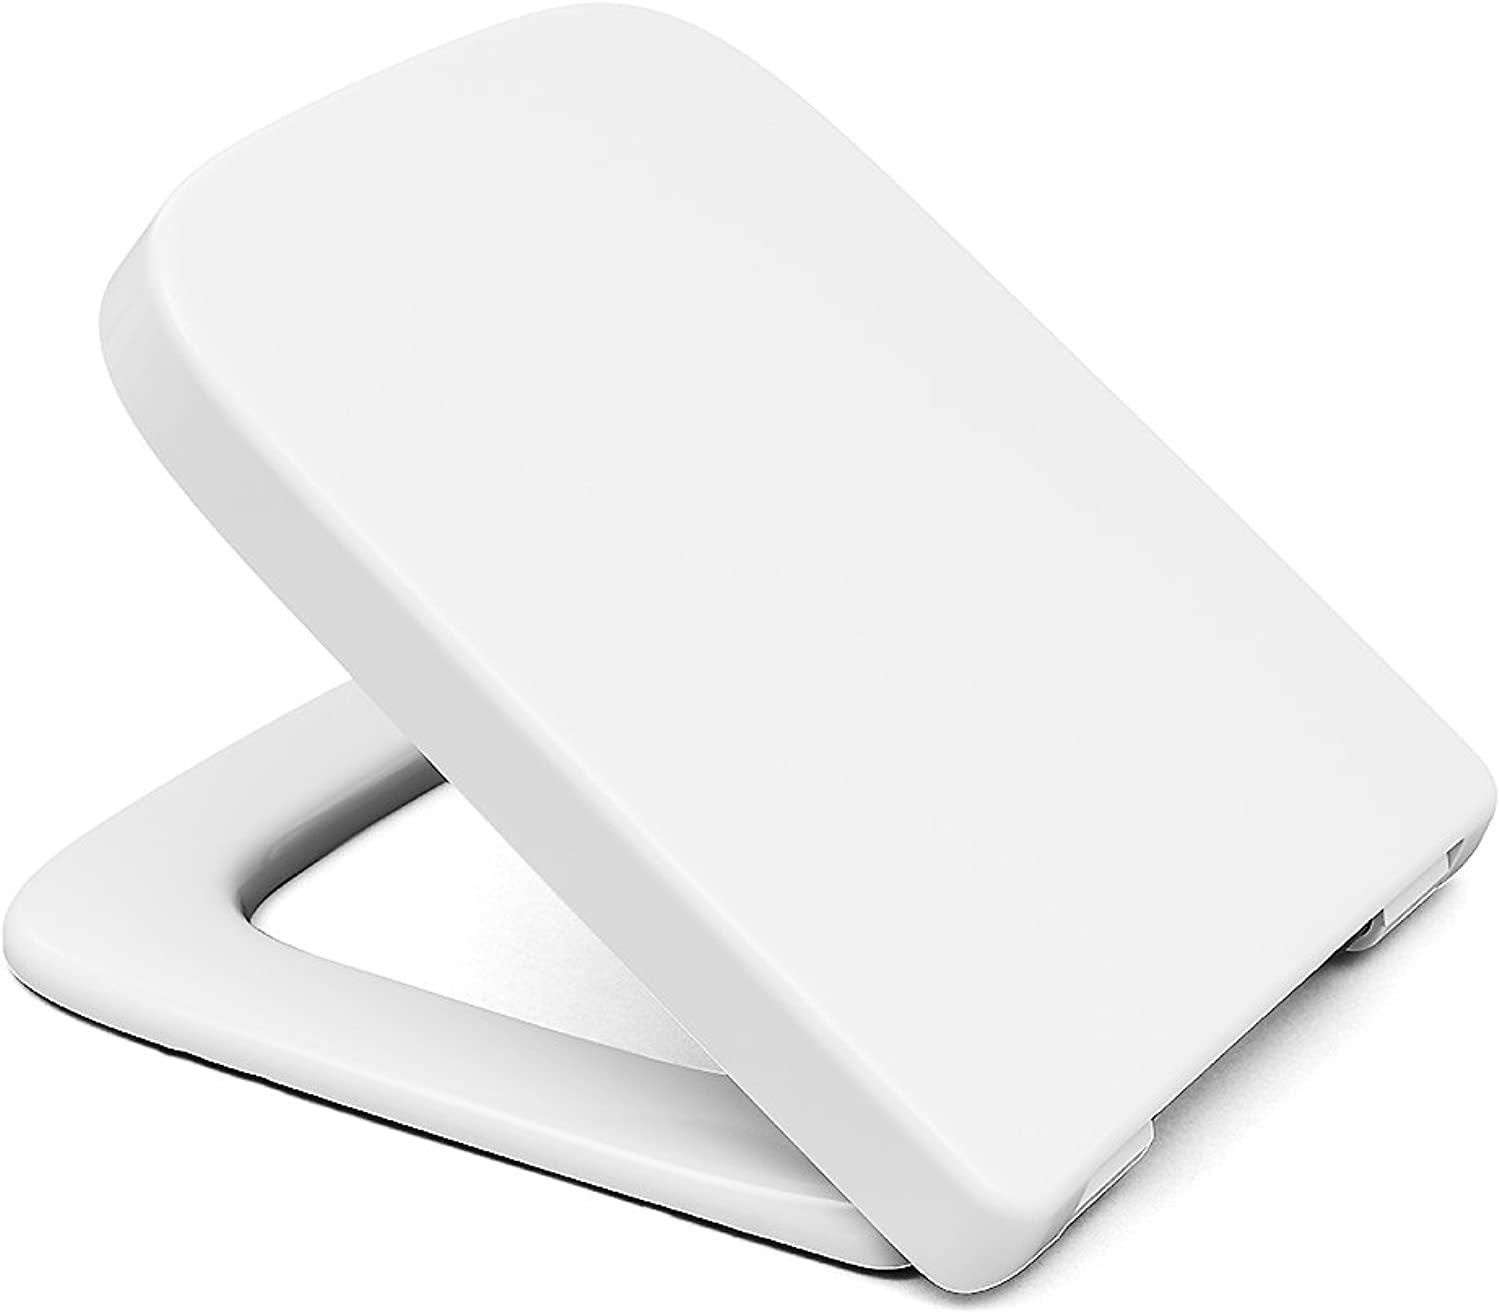 Bath & more Baltrum 150010590 Toilet Seat Stainless Steel Hinges White